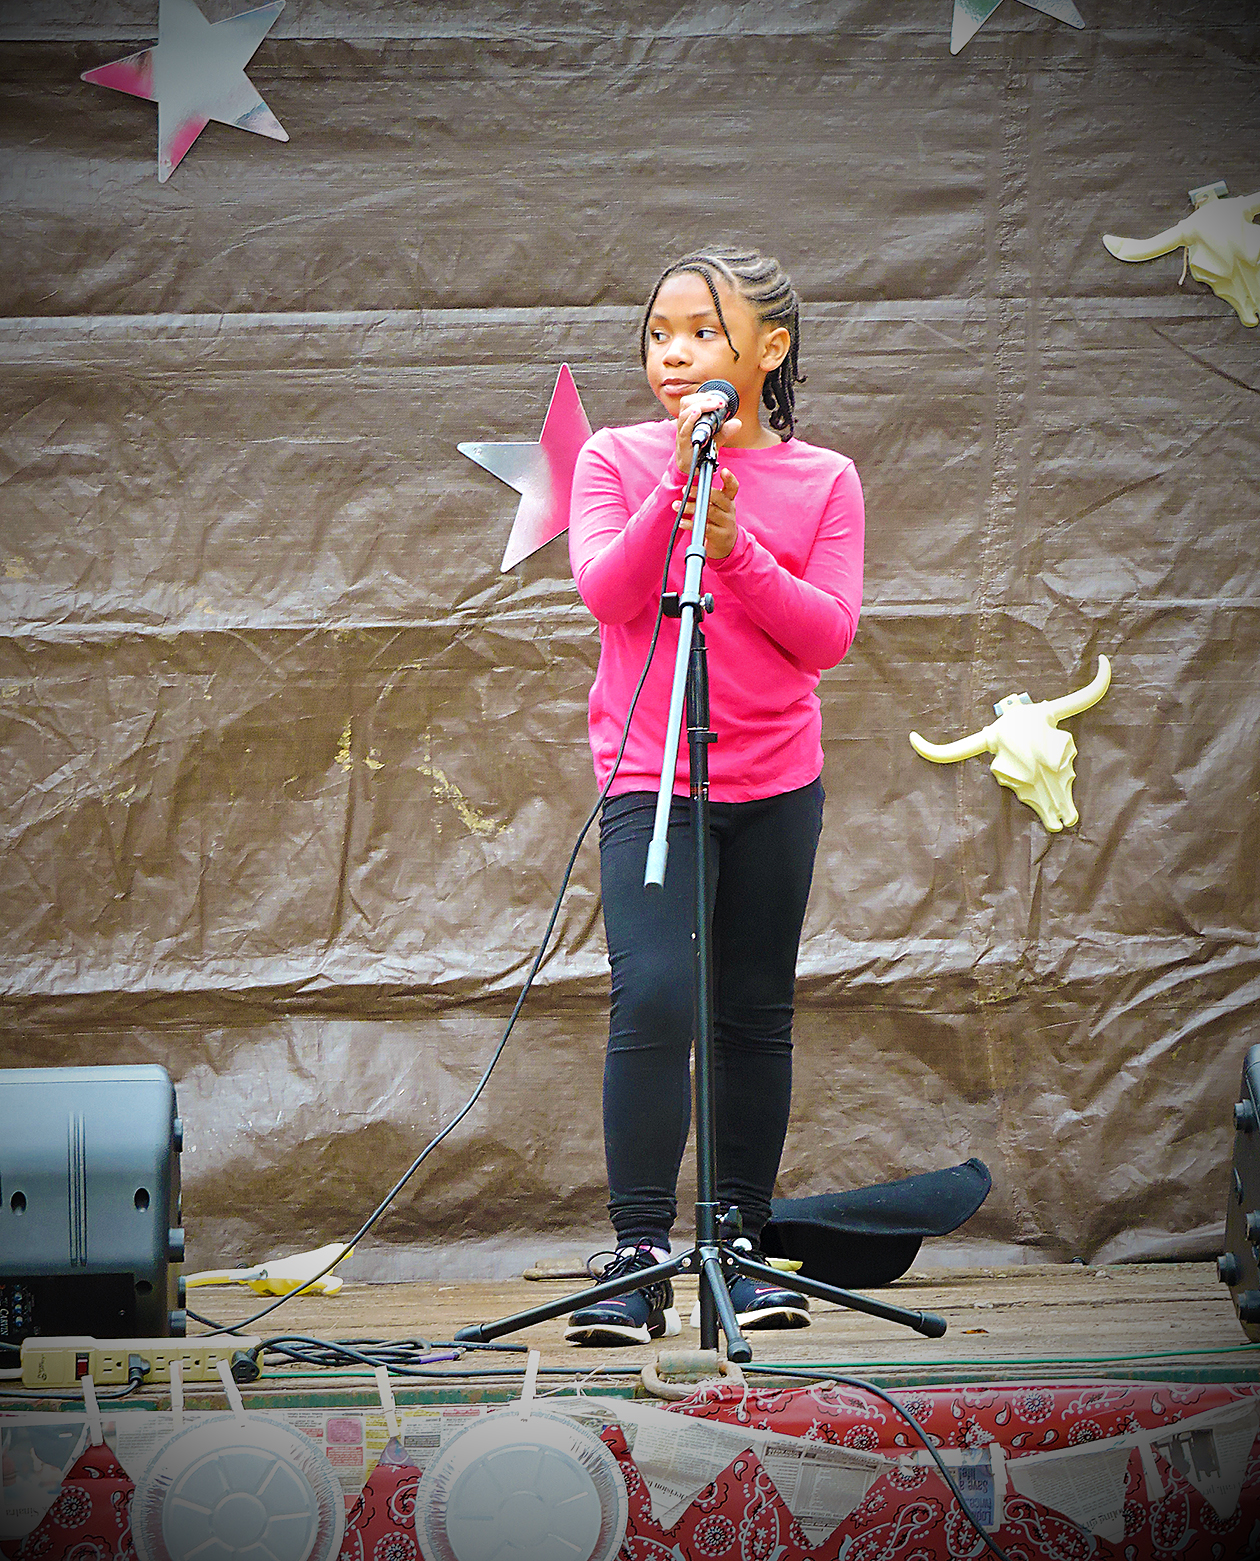 "Jaiyora Vann performs the Adele hit,""Hello"" at Glenolden's Community Day."